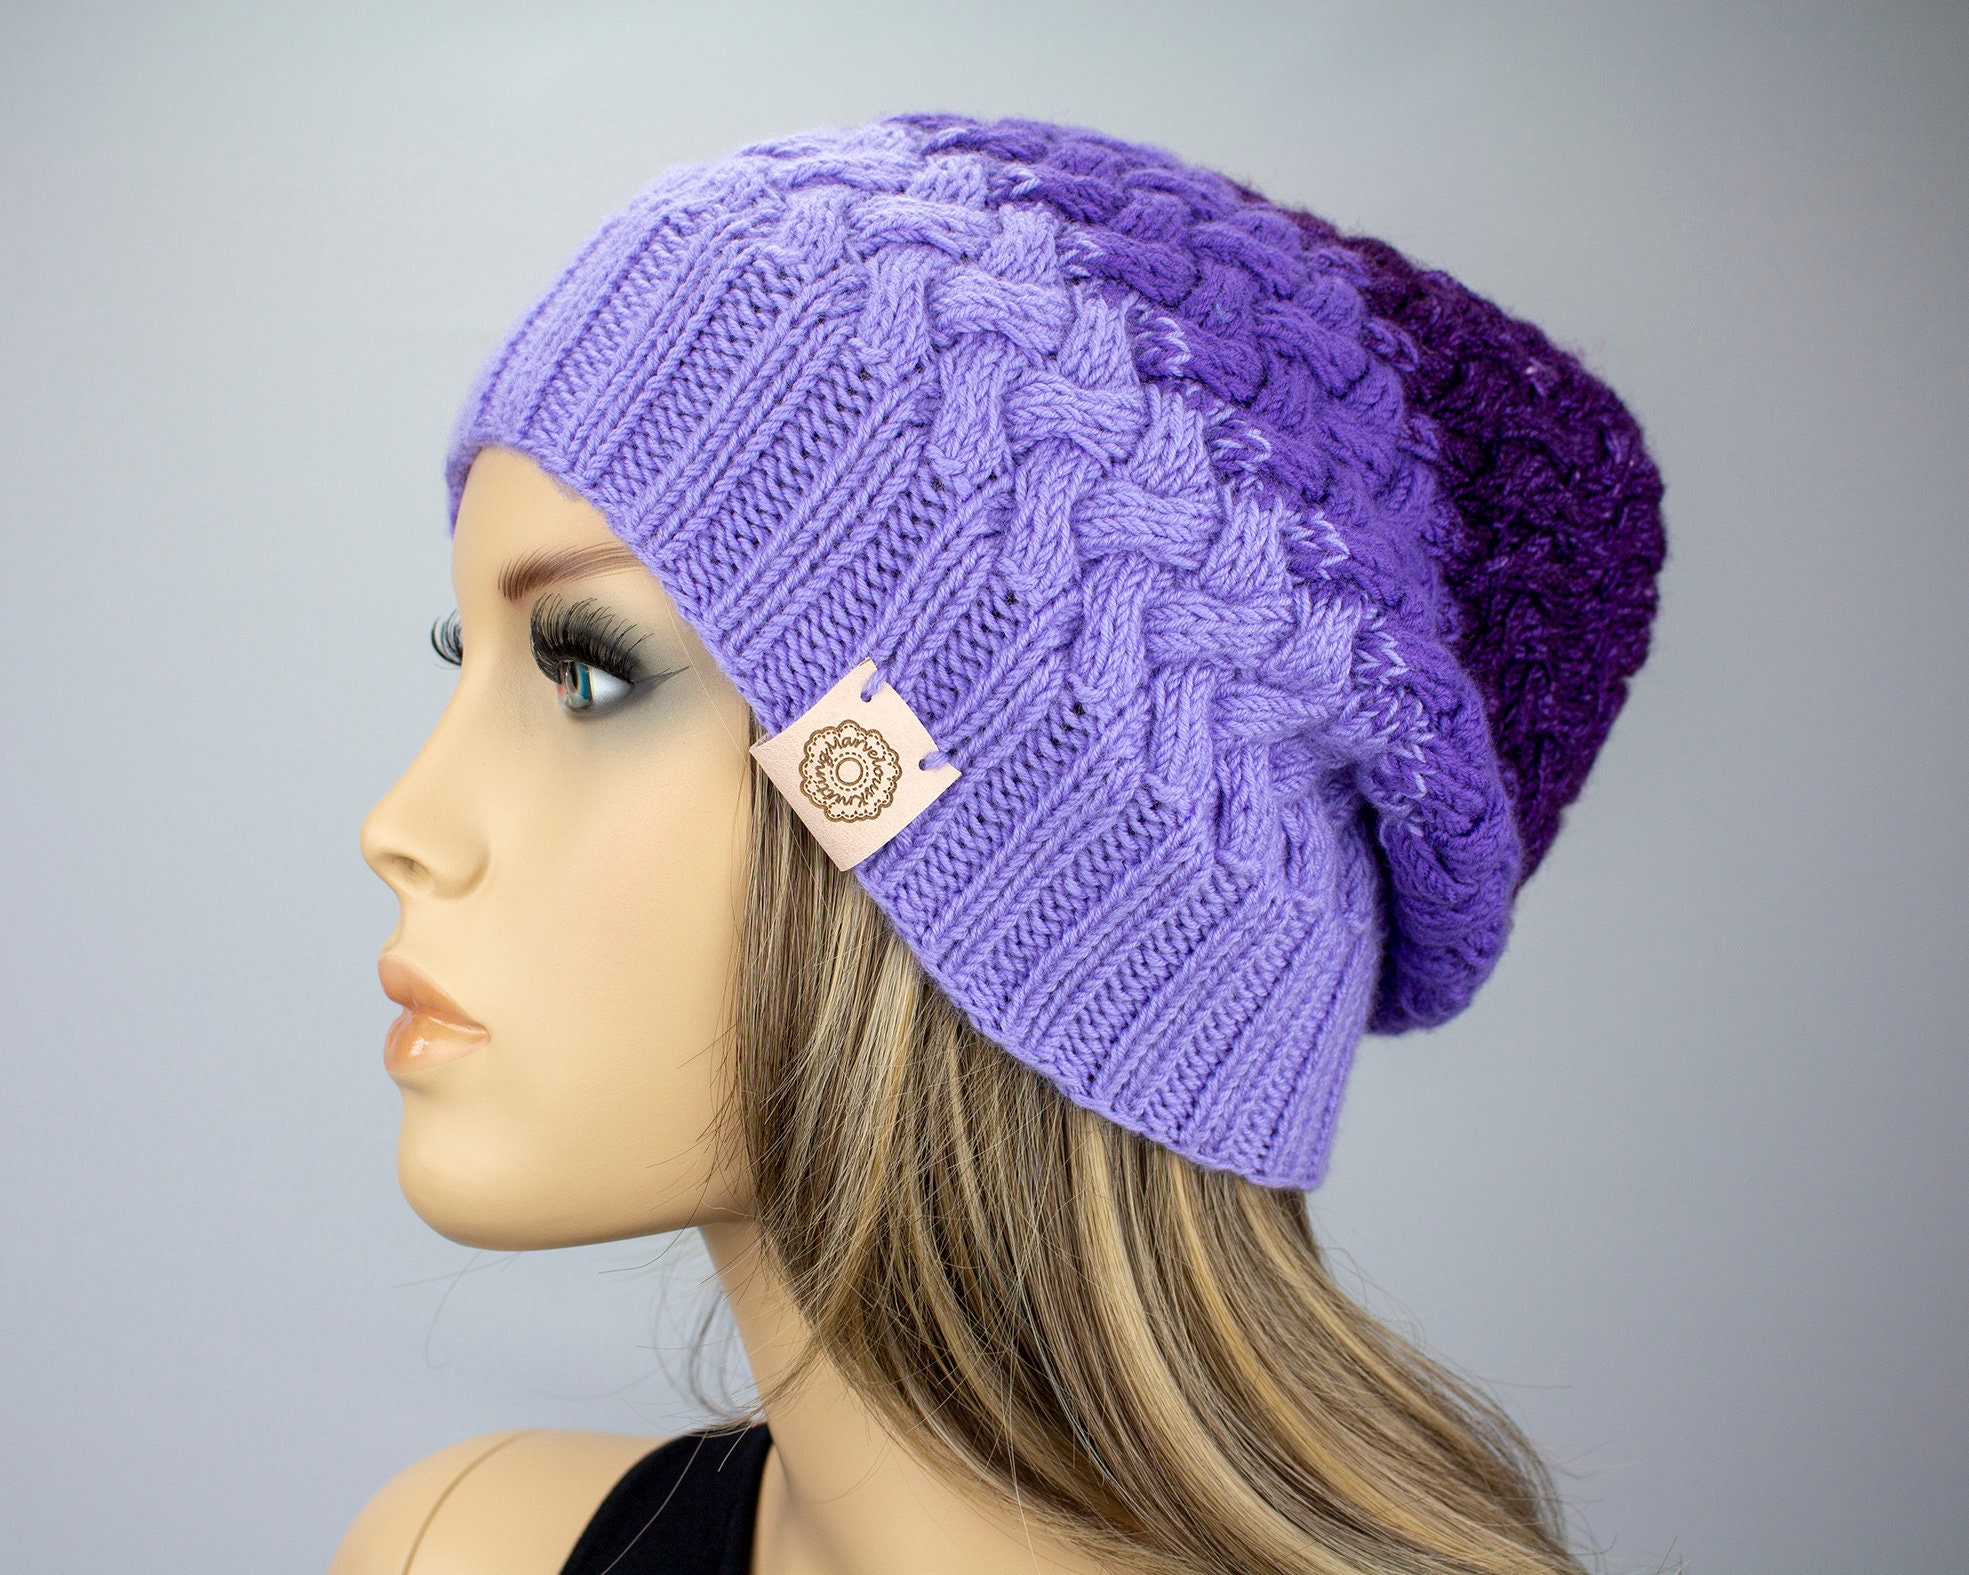 c64845503ec Purple Knitted Hat   Merino Wool Hat for Women   Slouchy